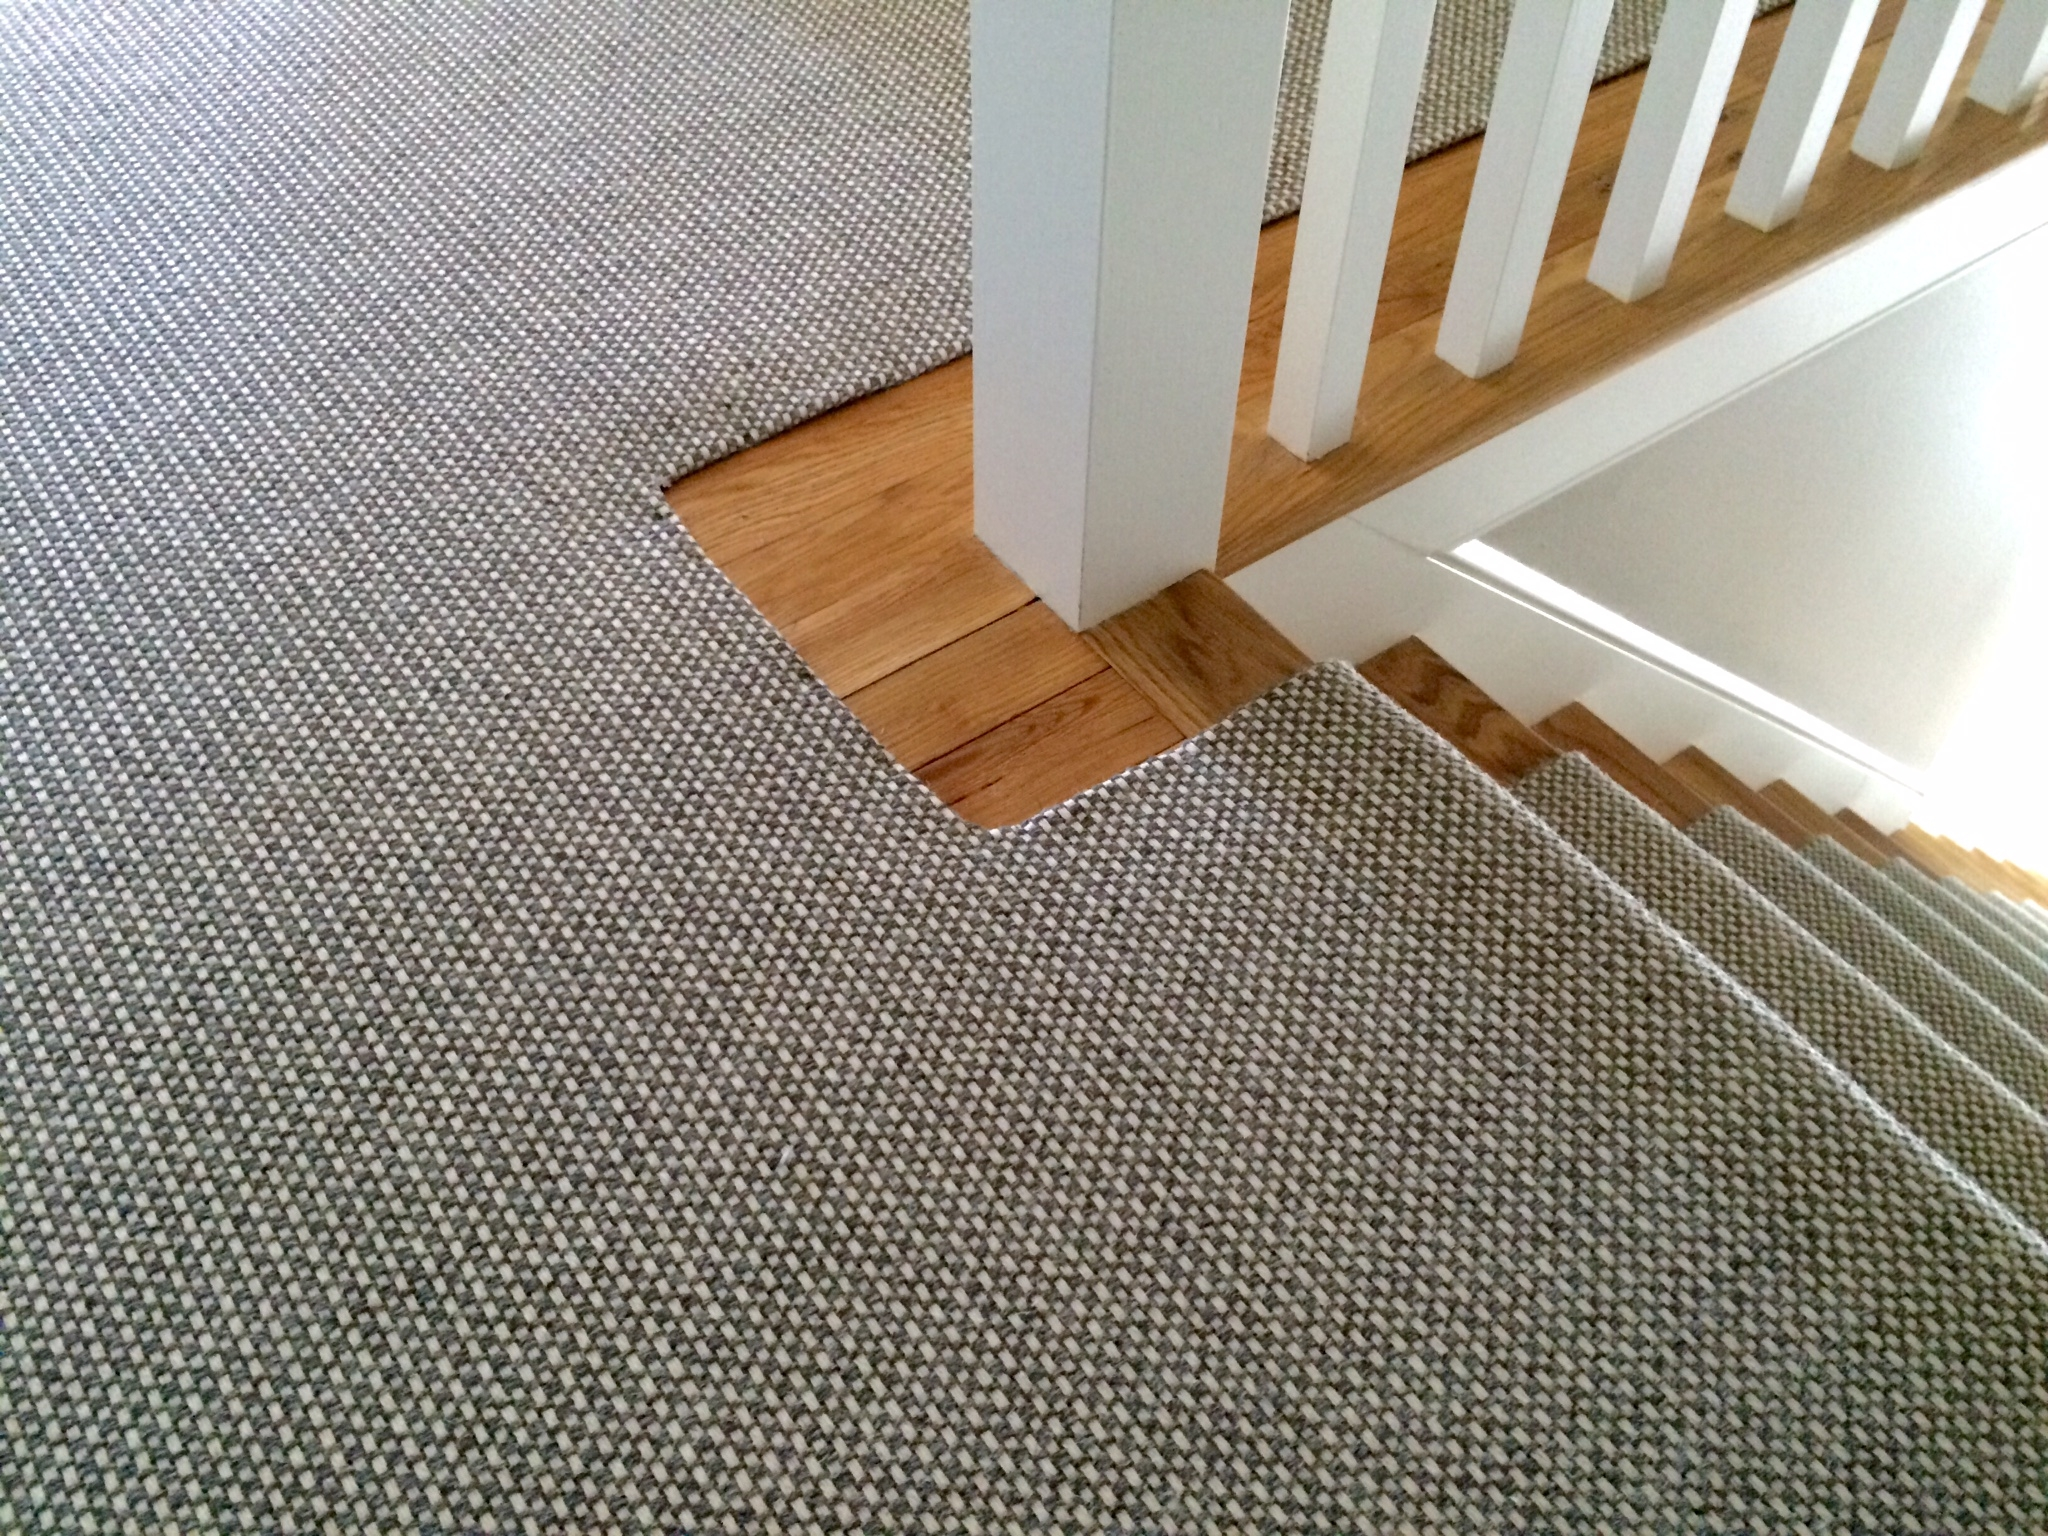 Check Out This Merida Studio Flat Woven Wool Stair Runner That With Stick On Carpet For Stairs (Image 4 of 15)